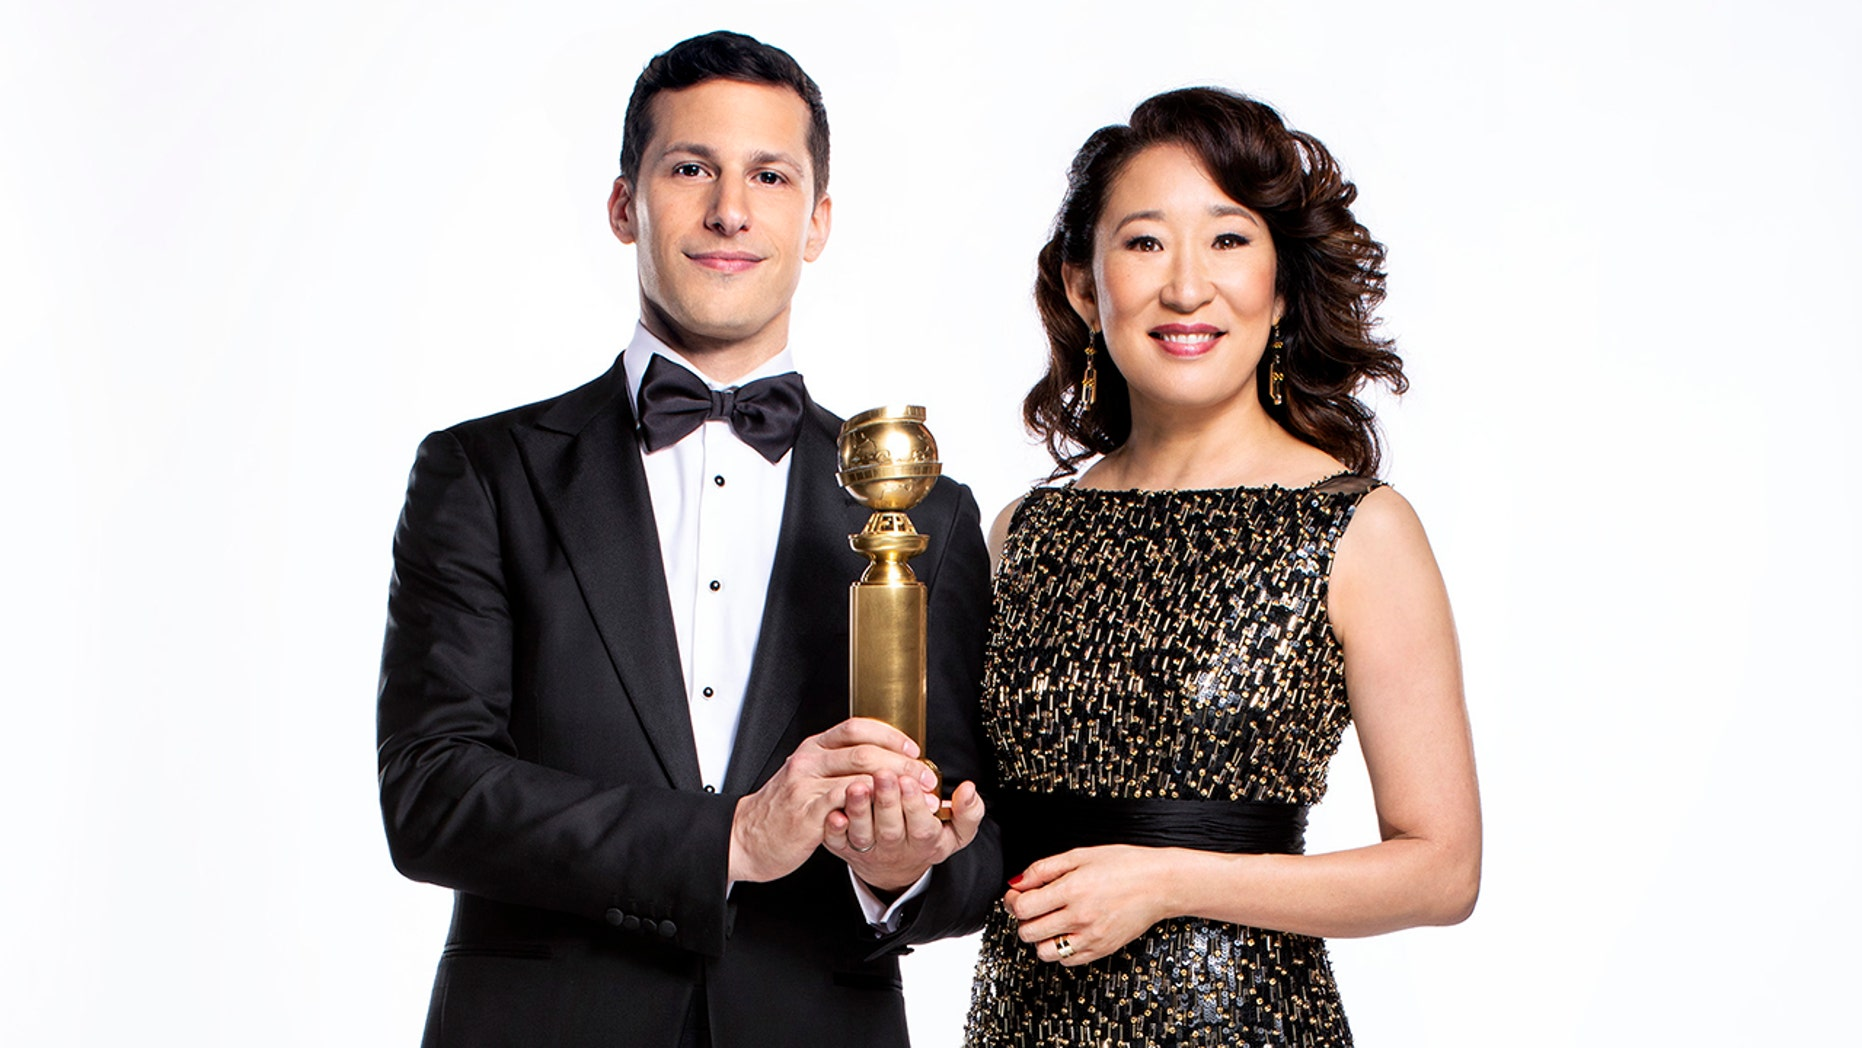 Golden Globes Announce Second Round of Presenters